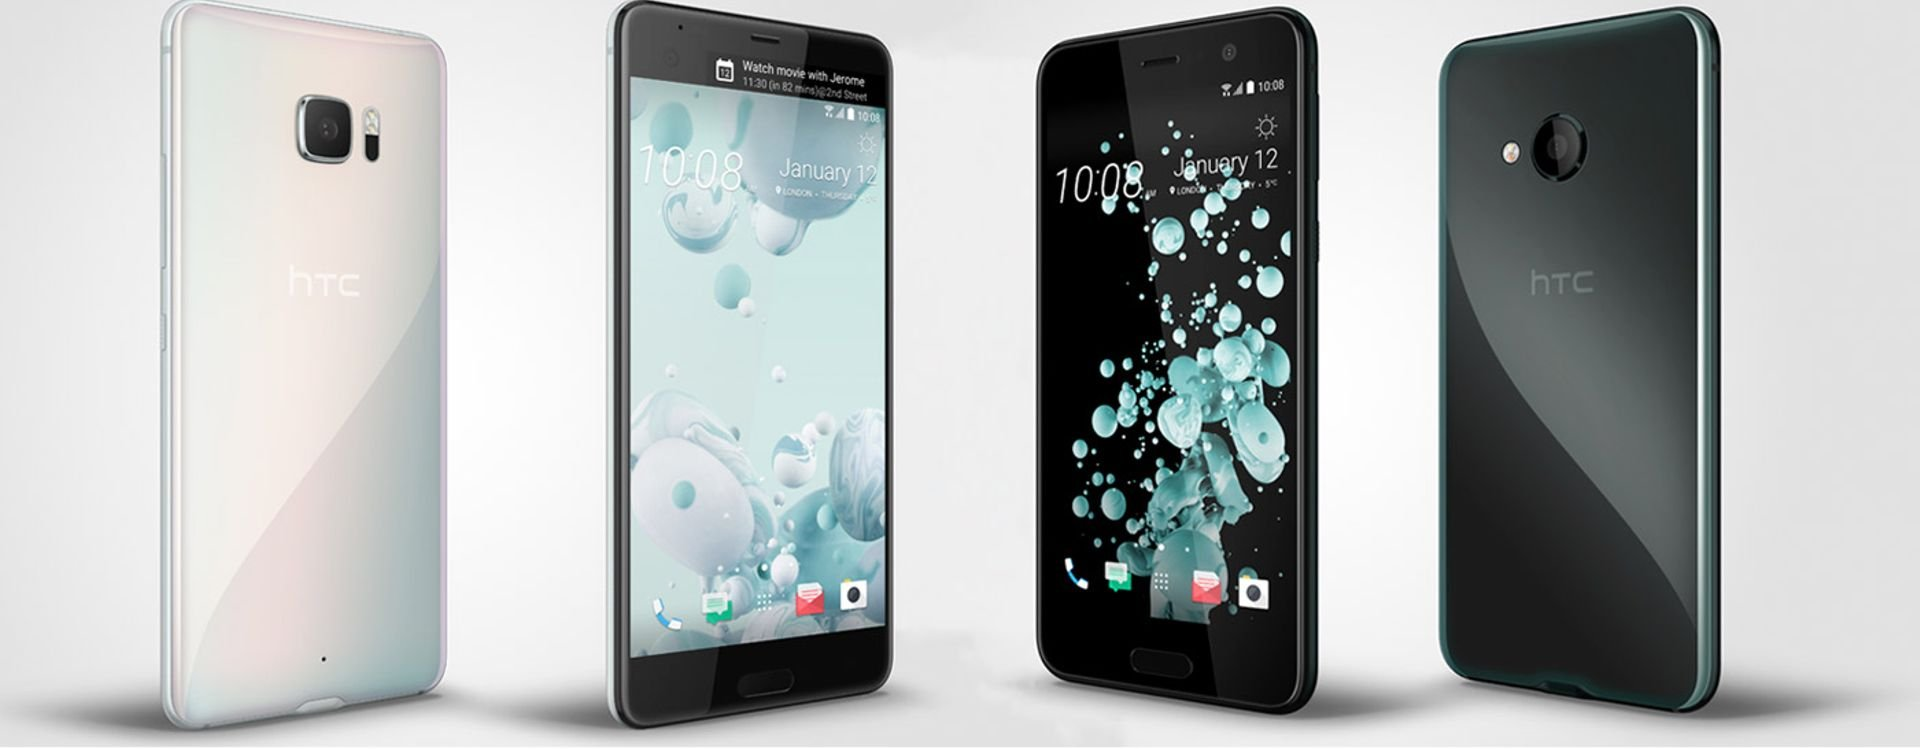 Learn about the new HTC smartphones.